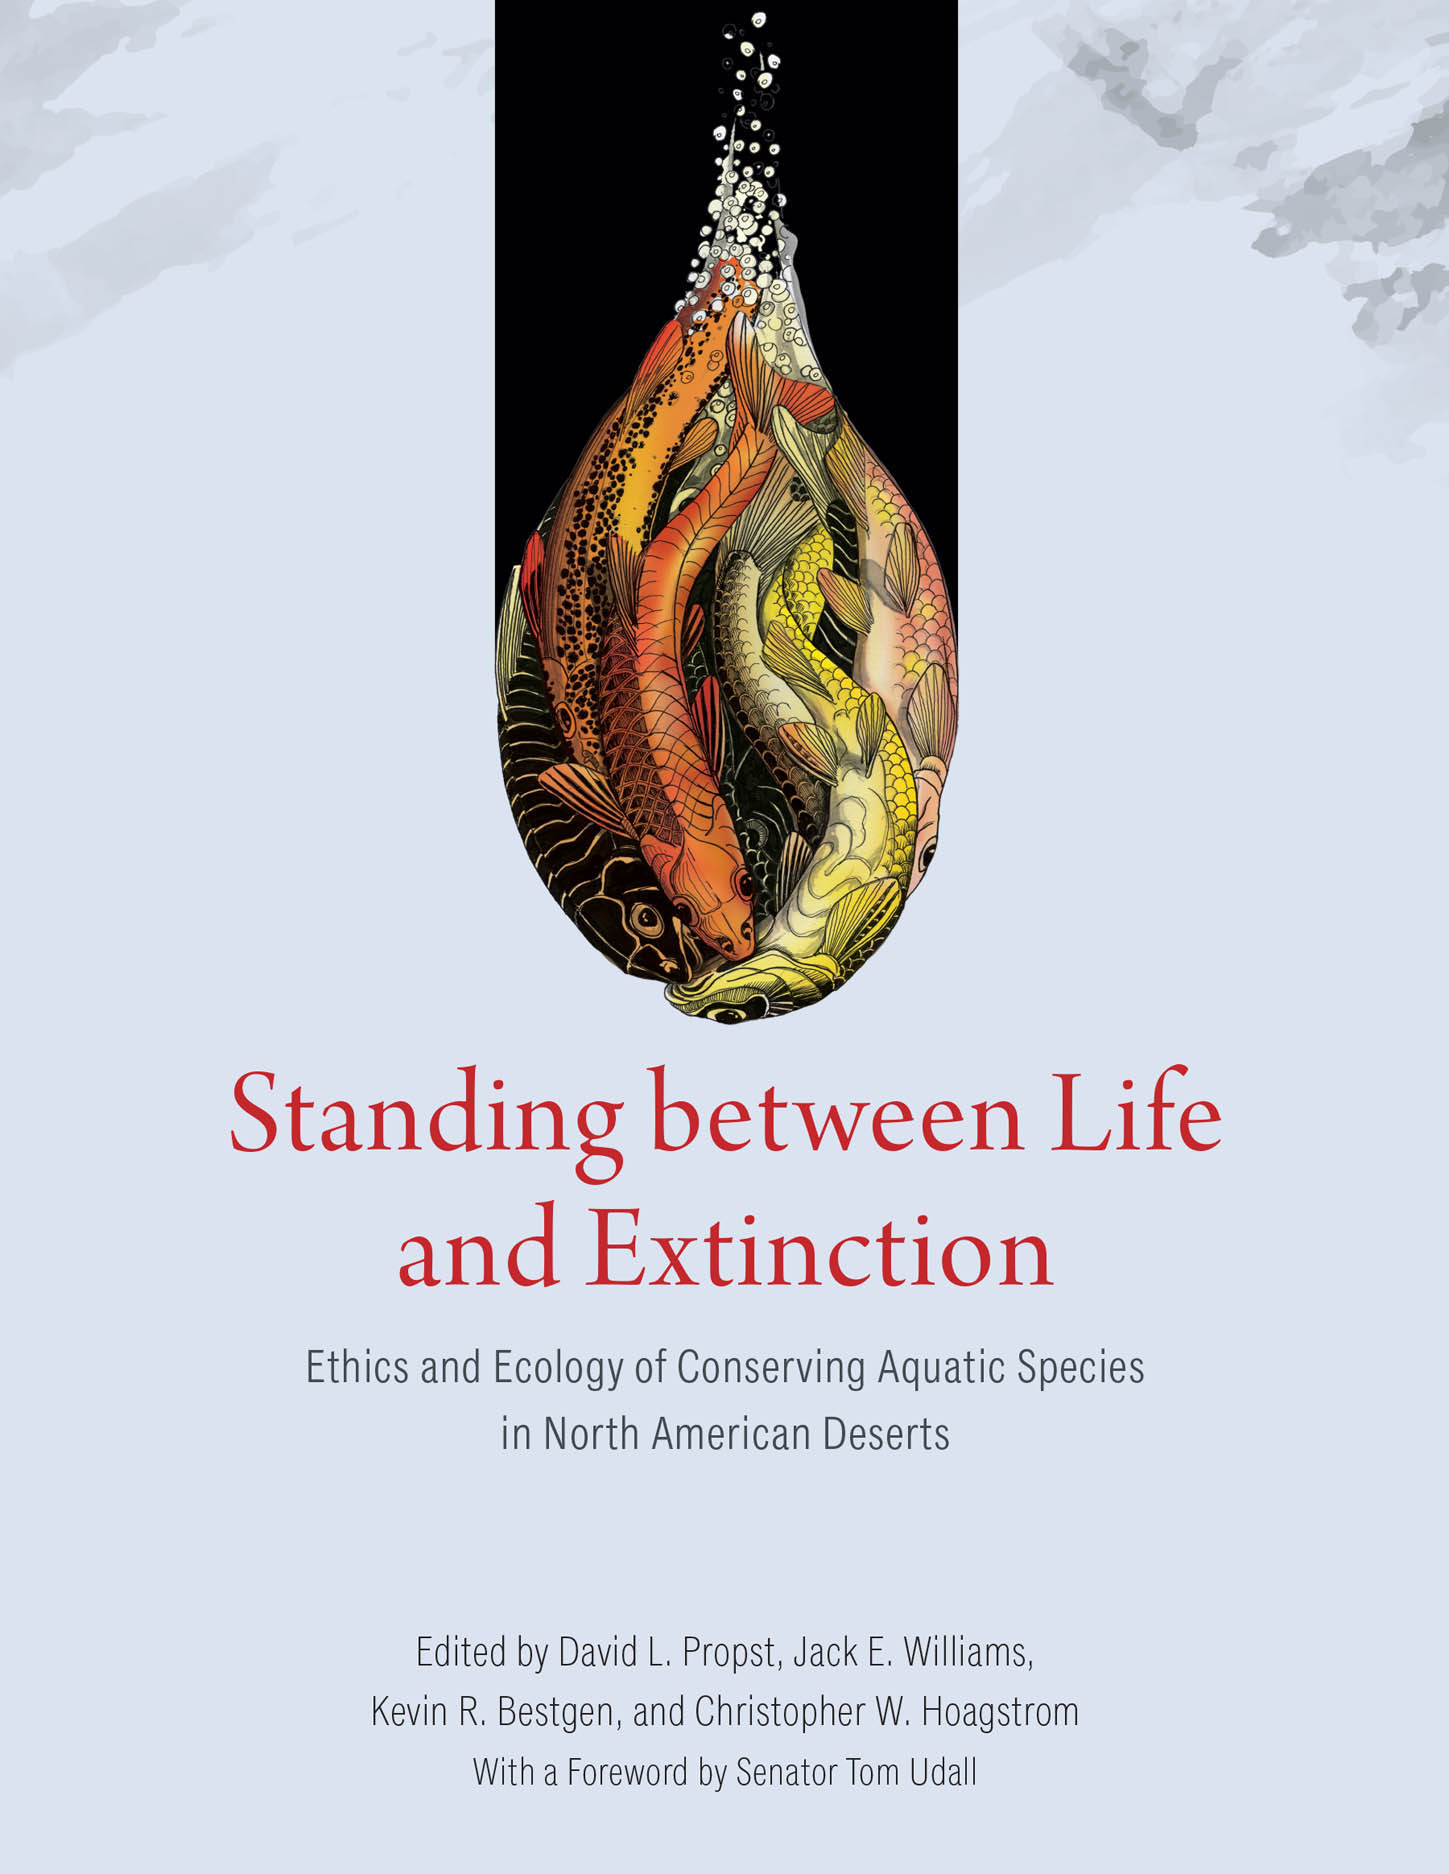 Standing between Life and Extinction: Ethics and Ecology of Conserving Aquatic Species in North American Deserts